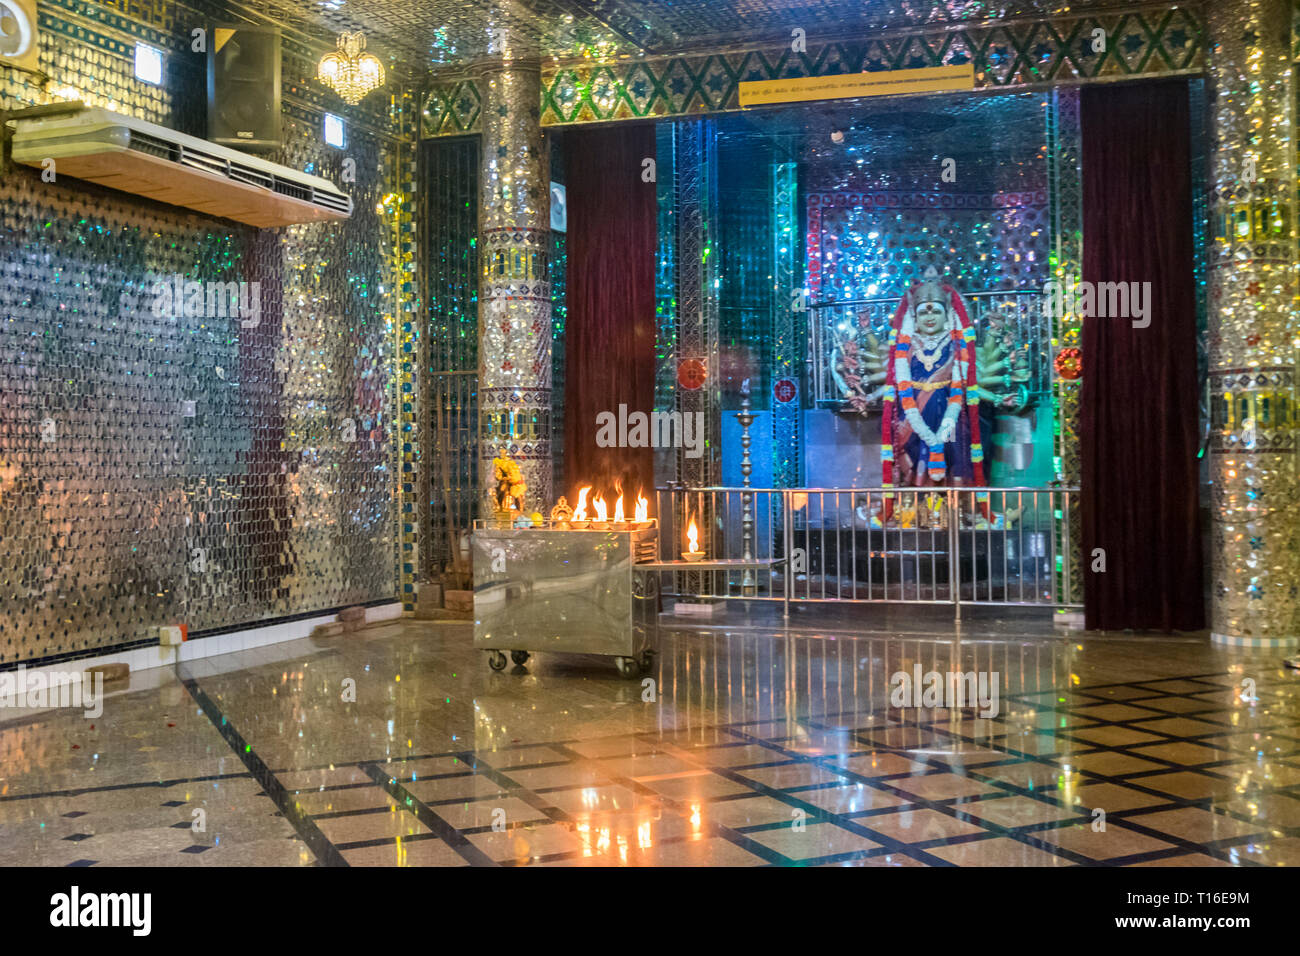 The unique Arulmigu Sri Rajakaliamman Glass Temple in Johor Bahru, Malaysia. The interior is completely covered in glass tiles. Glittery interior. - Stock Image